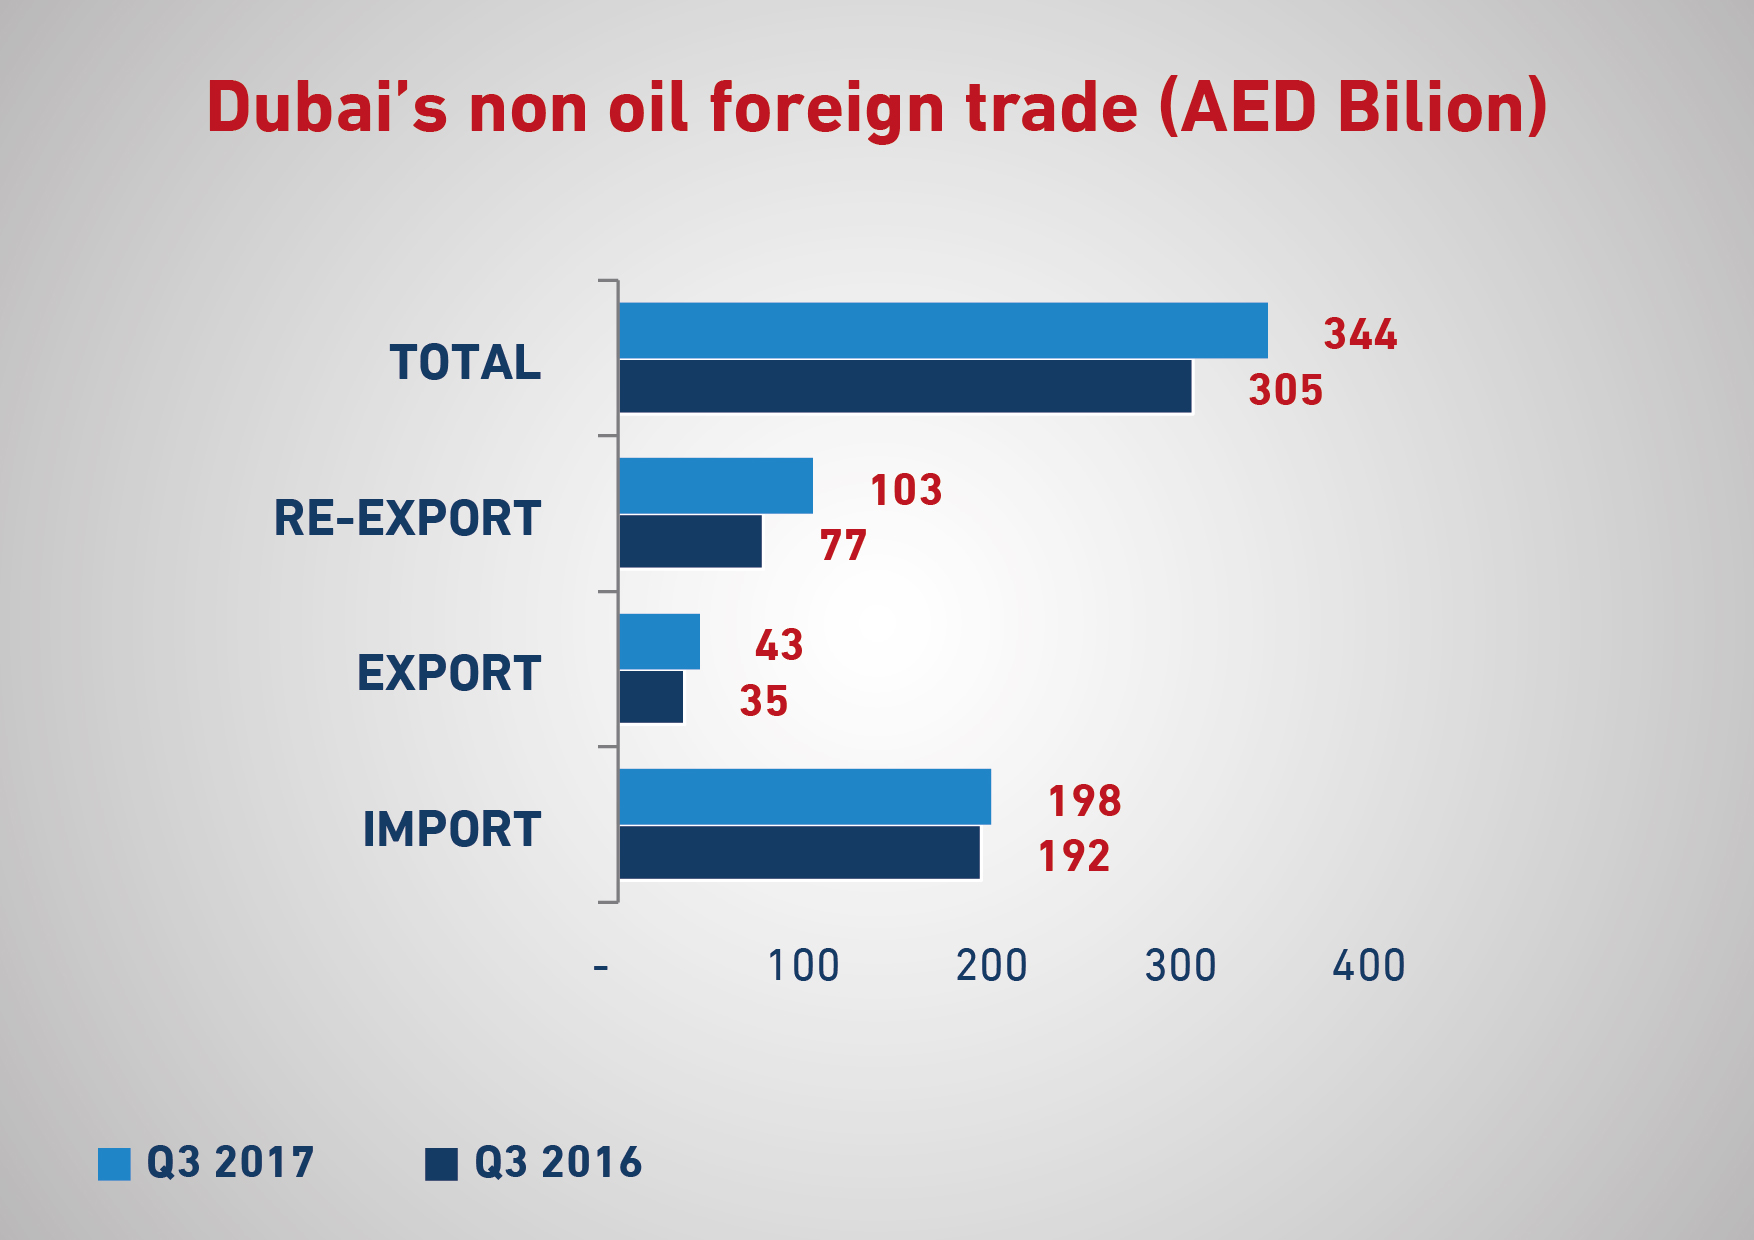 dubai non-oil foreign trade increases by 13% year-on-year in q3 2017